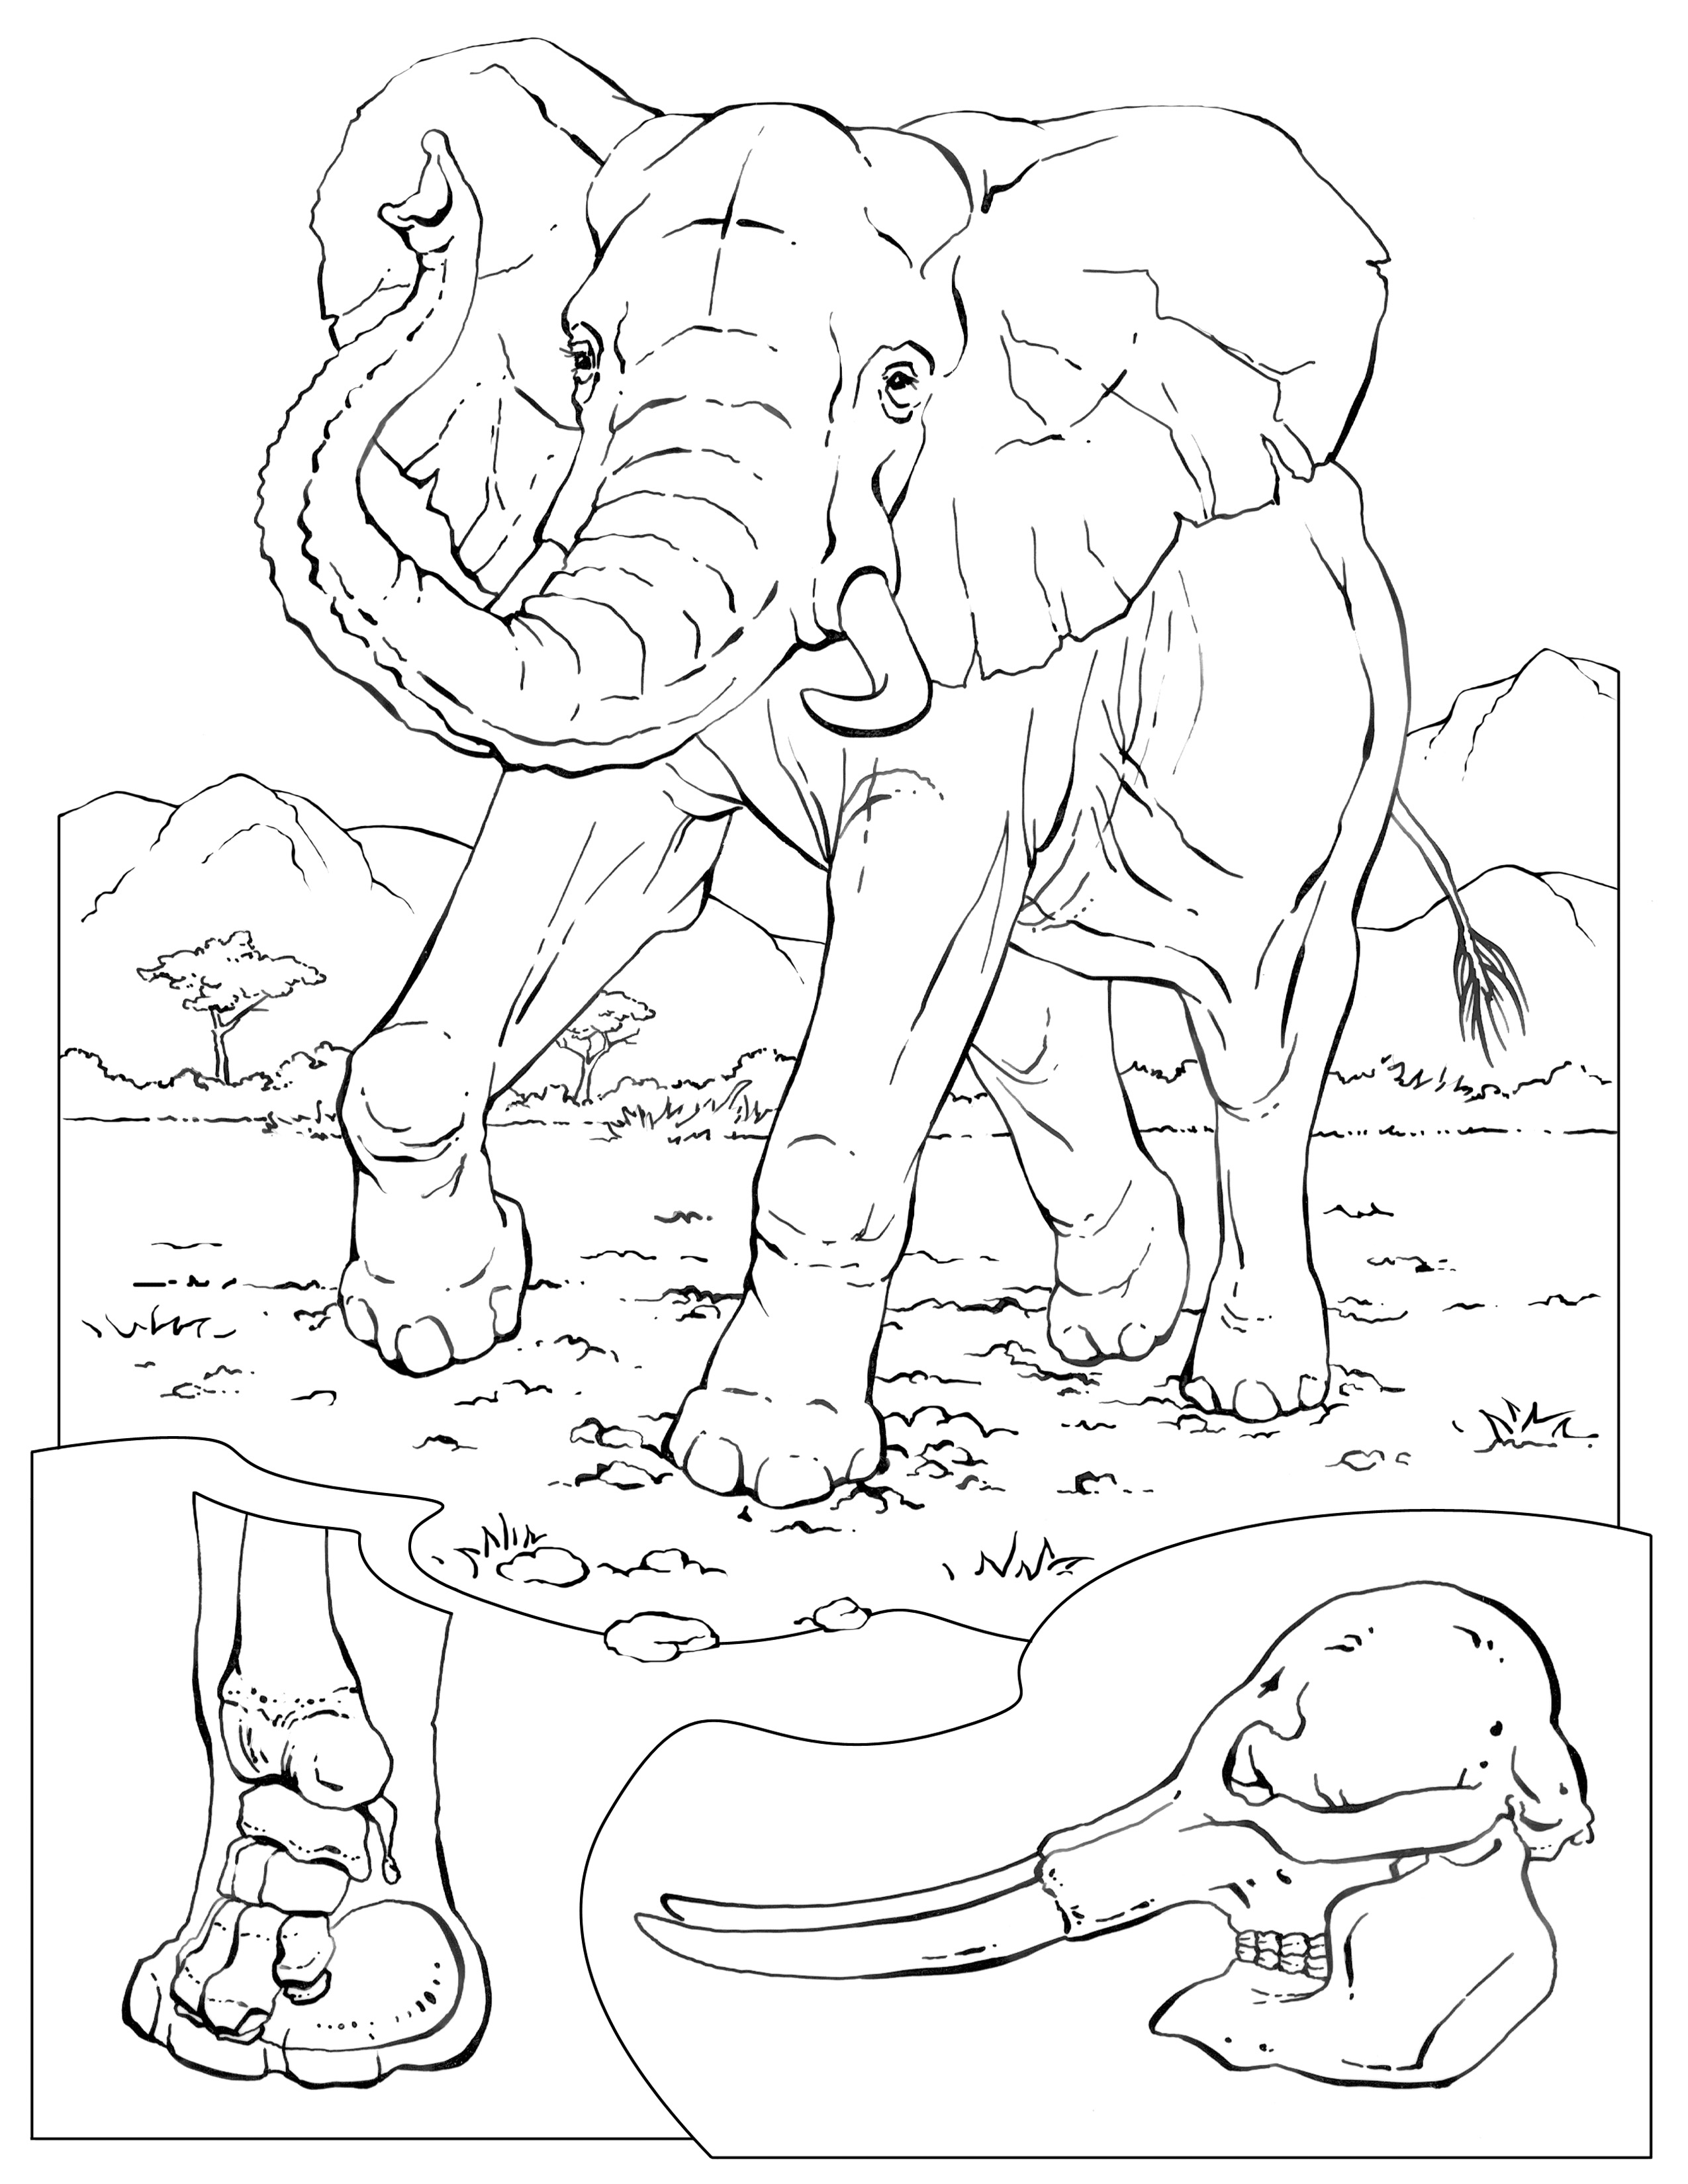 exotic animal coloring pages exotic animals adult coloring book designs myria pages animal exotic coloring